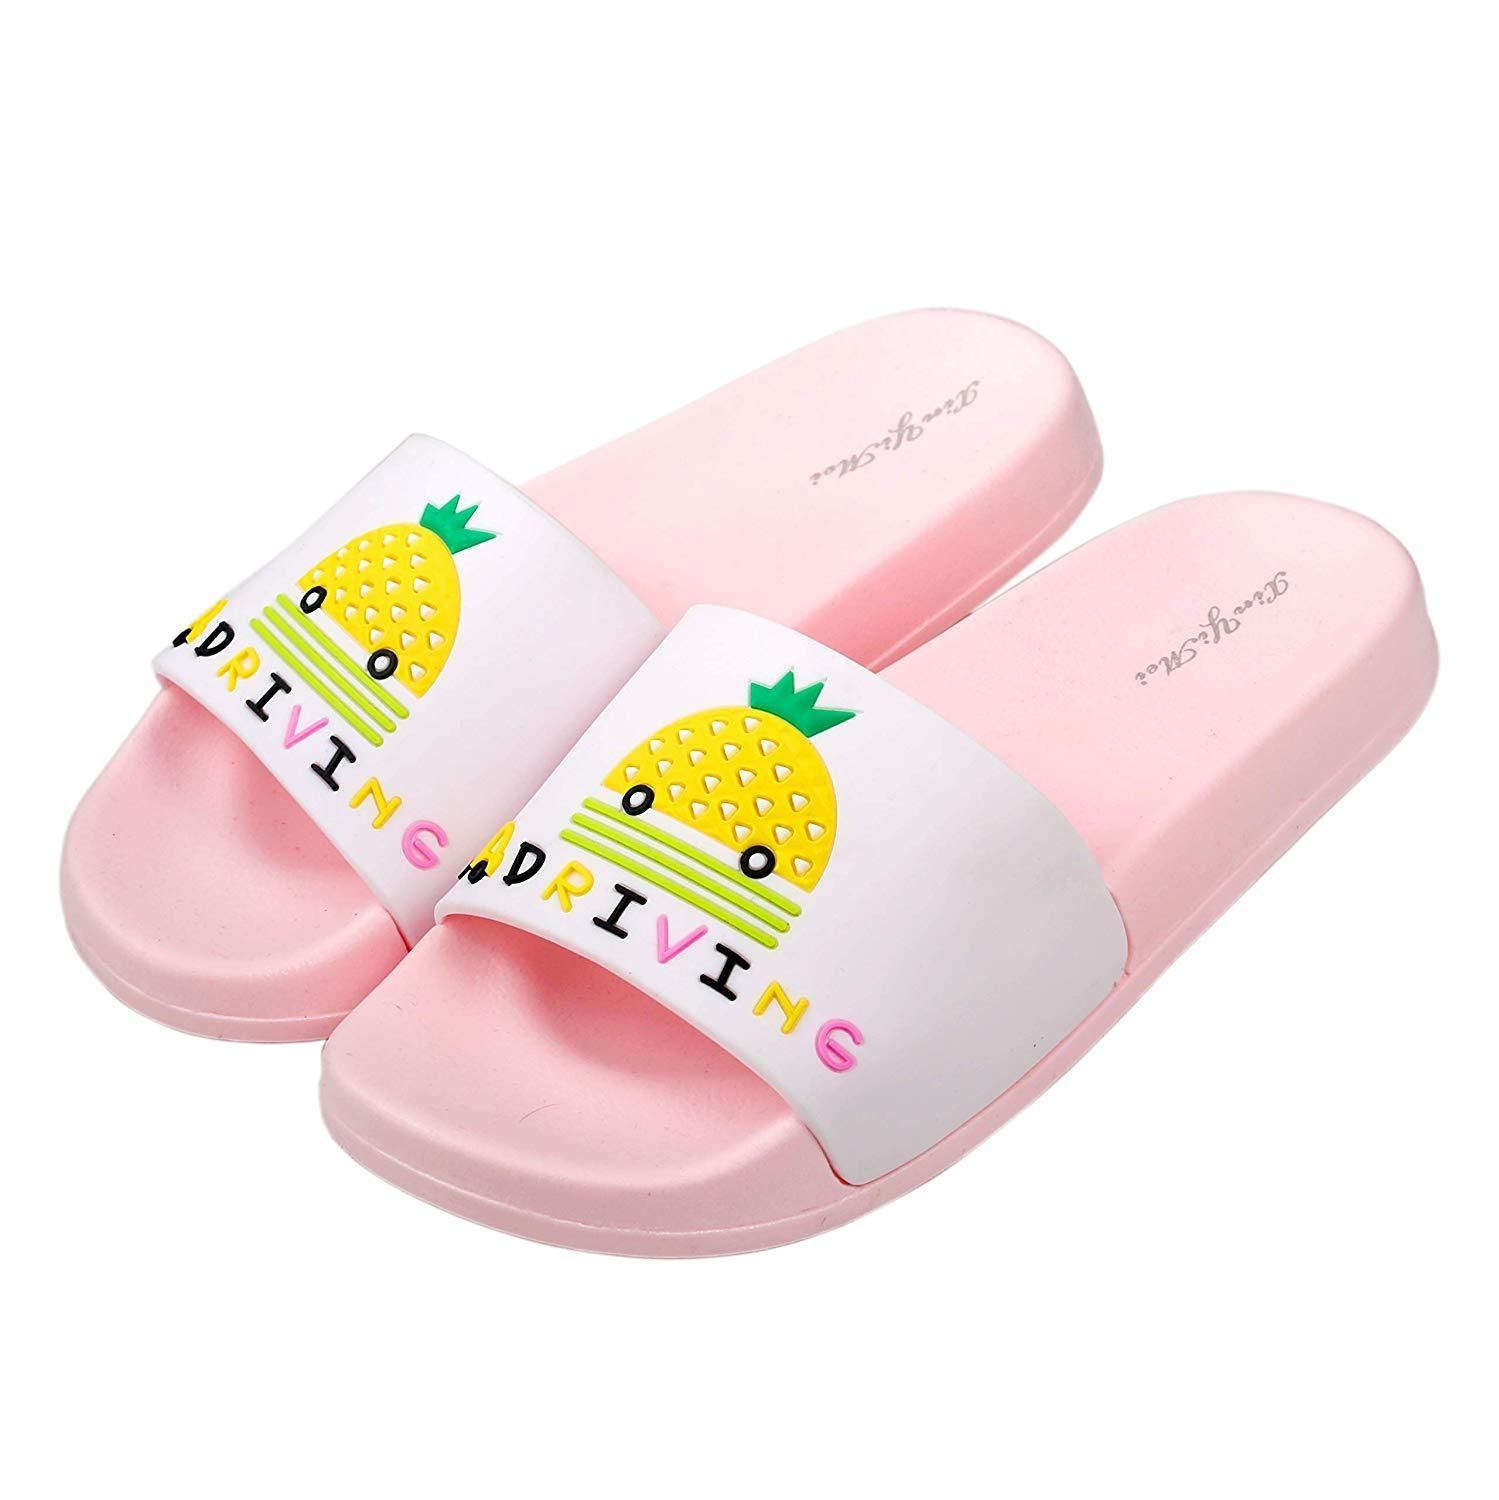 Anddyam Kids Household Sandals Anti-Slip Indoor Outdoor Home Slippers for Girls and Boys